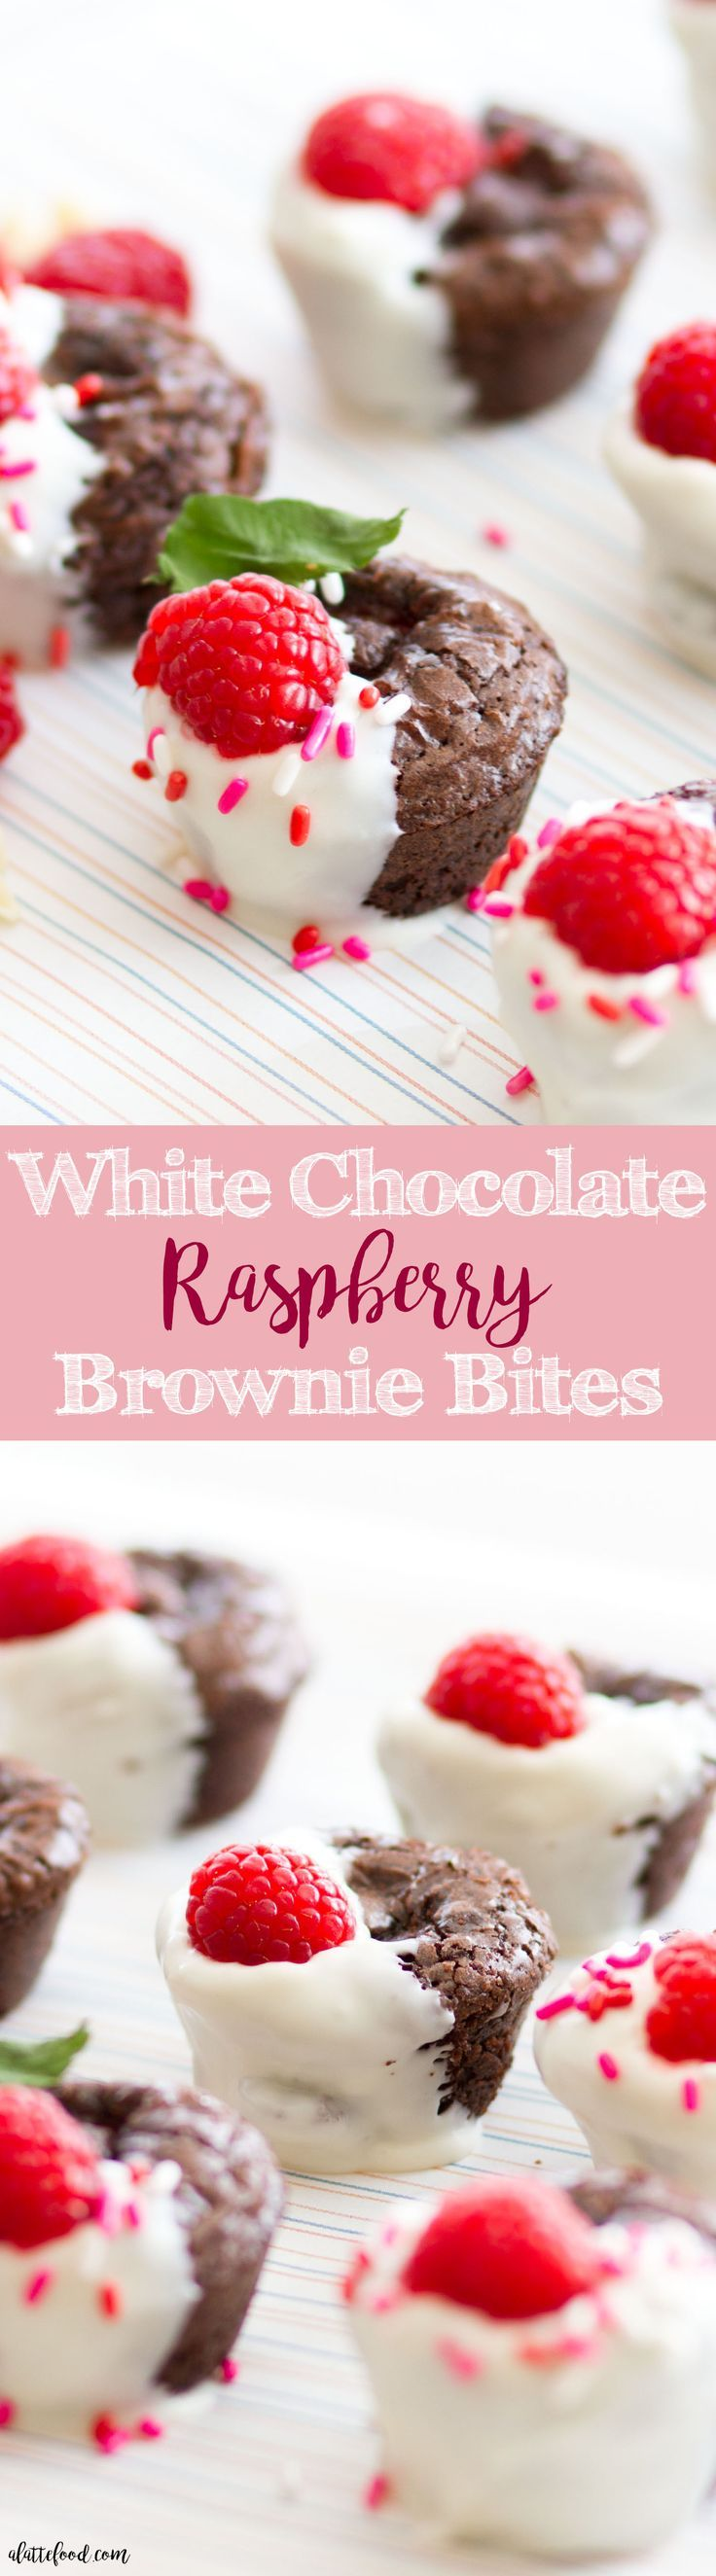 These easy white chocolate raspberry brownie bites are such a cute Valentine's Day dessert recipe! Raspberries are baked inside of the fudge brownies, and then dipped in white chocolate! A rich, decadent dessert that's super simple!: